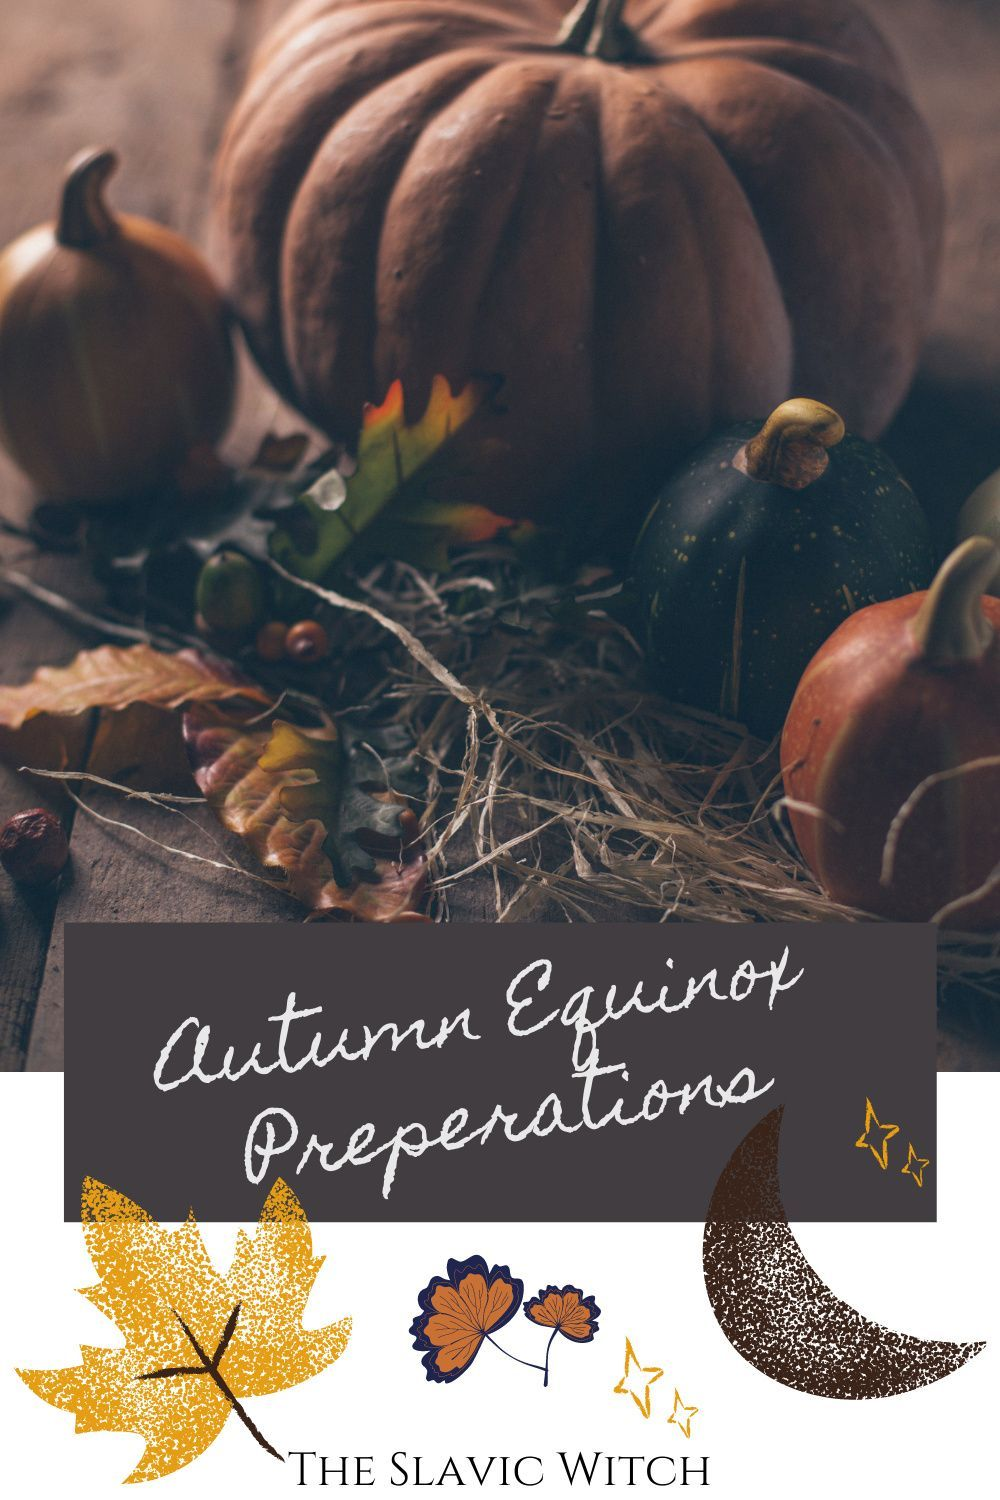 Lots of different ideas you can use to decorate your Mabon